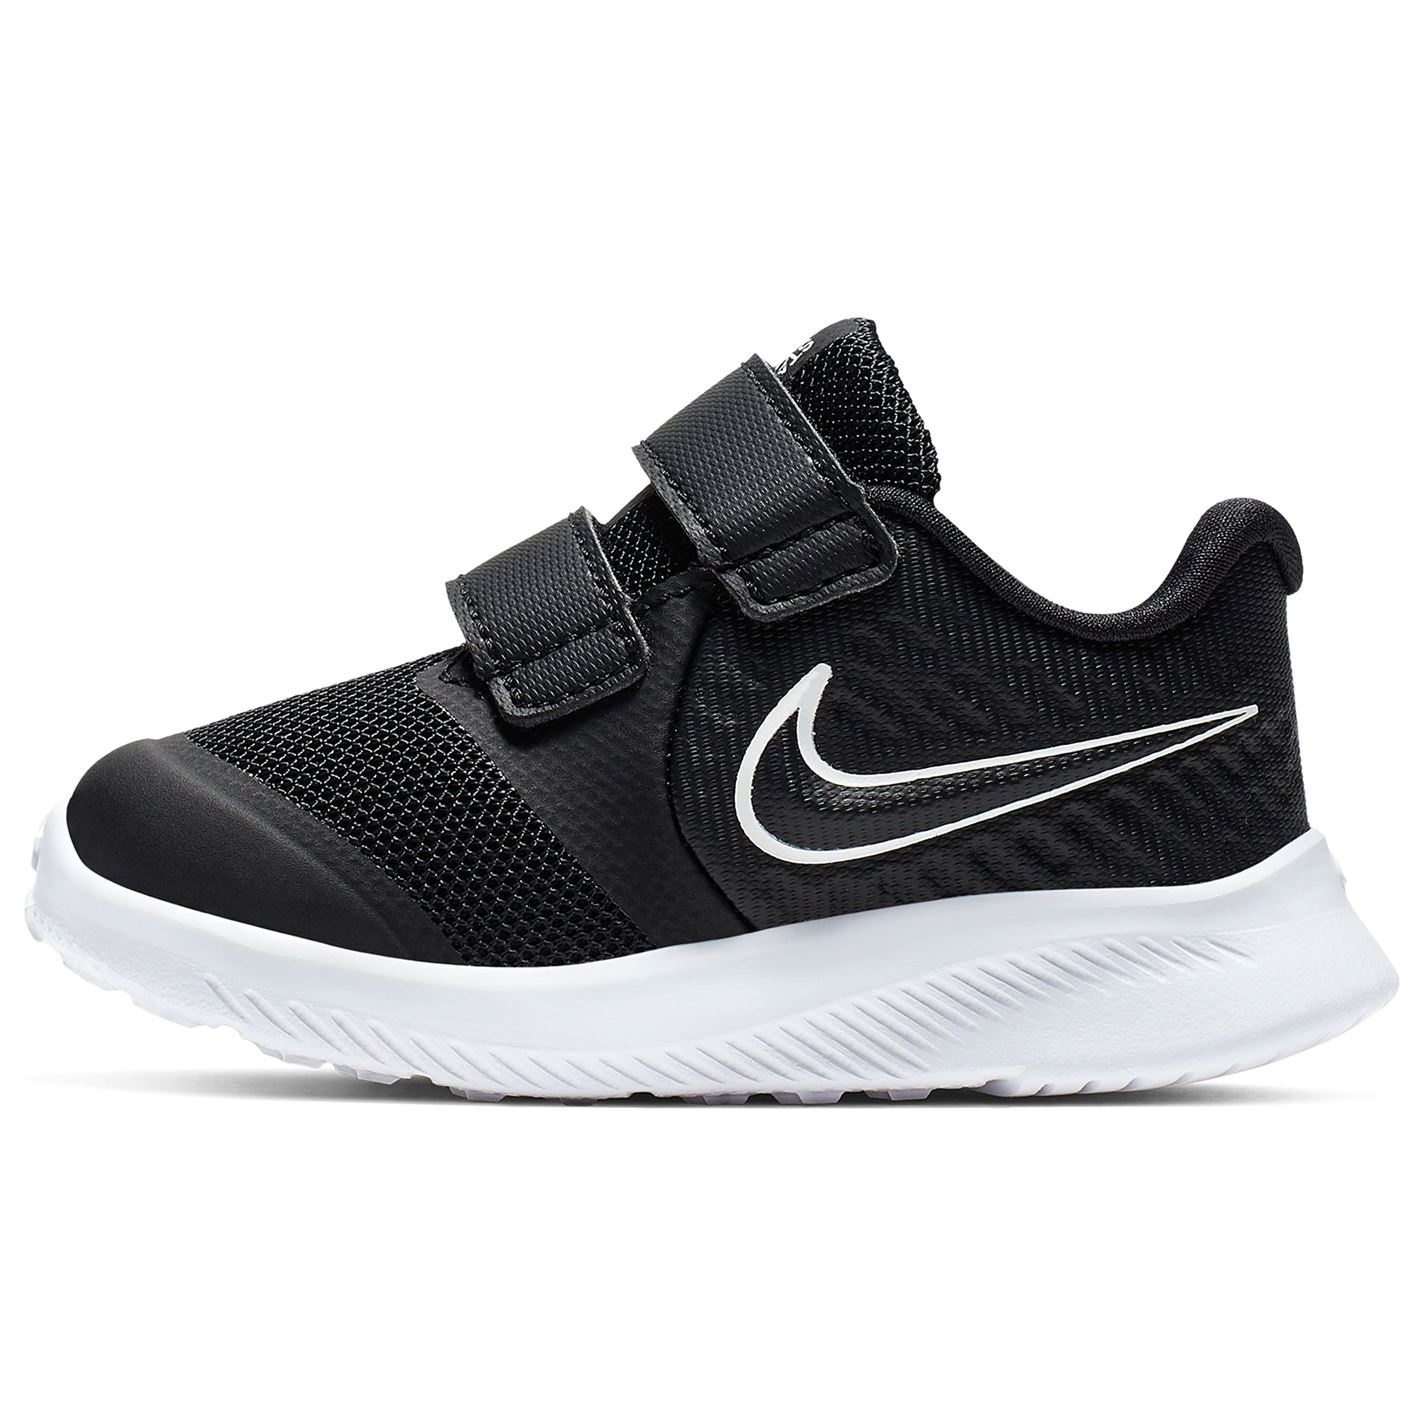 Nike Star Runner 2 Baby/Toddler Shoe Black/White